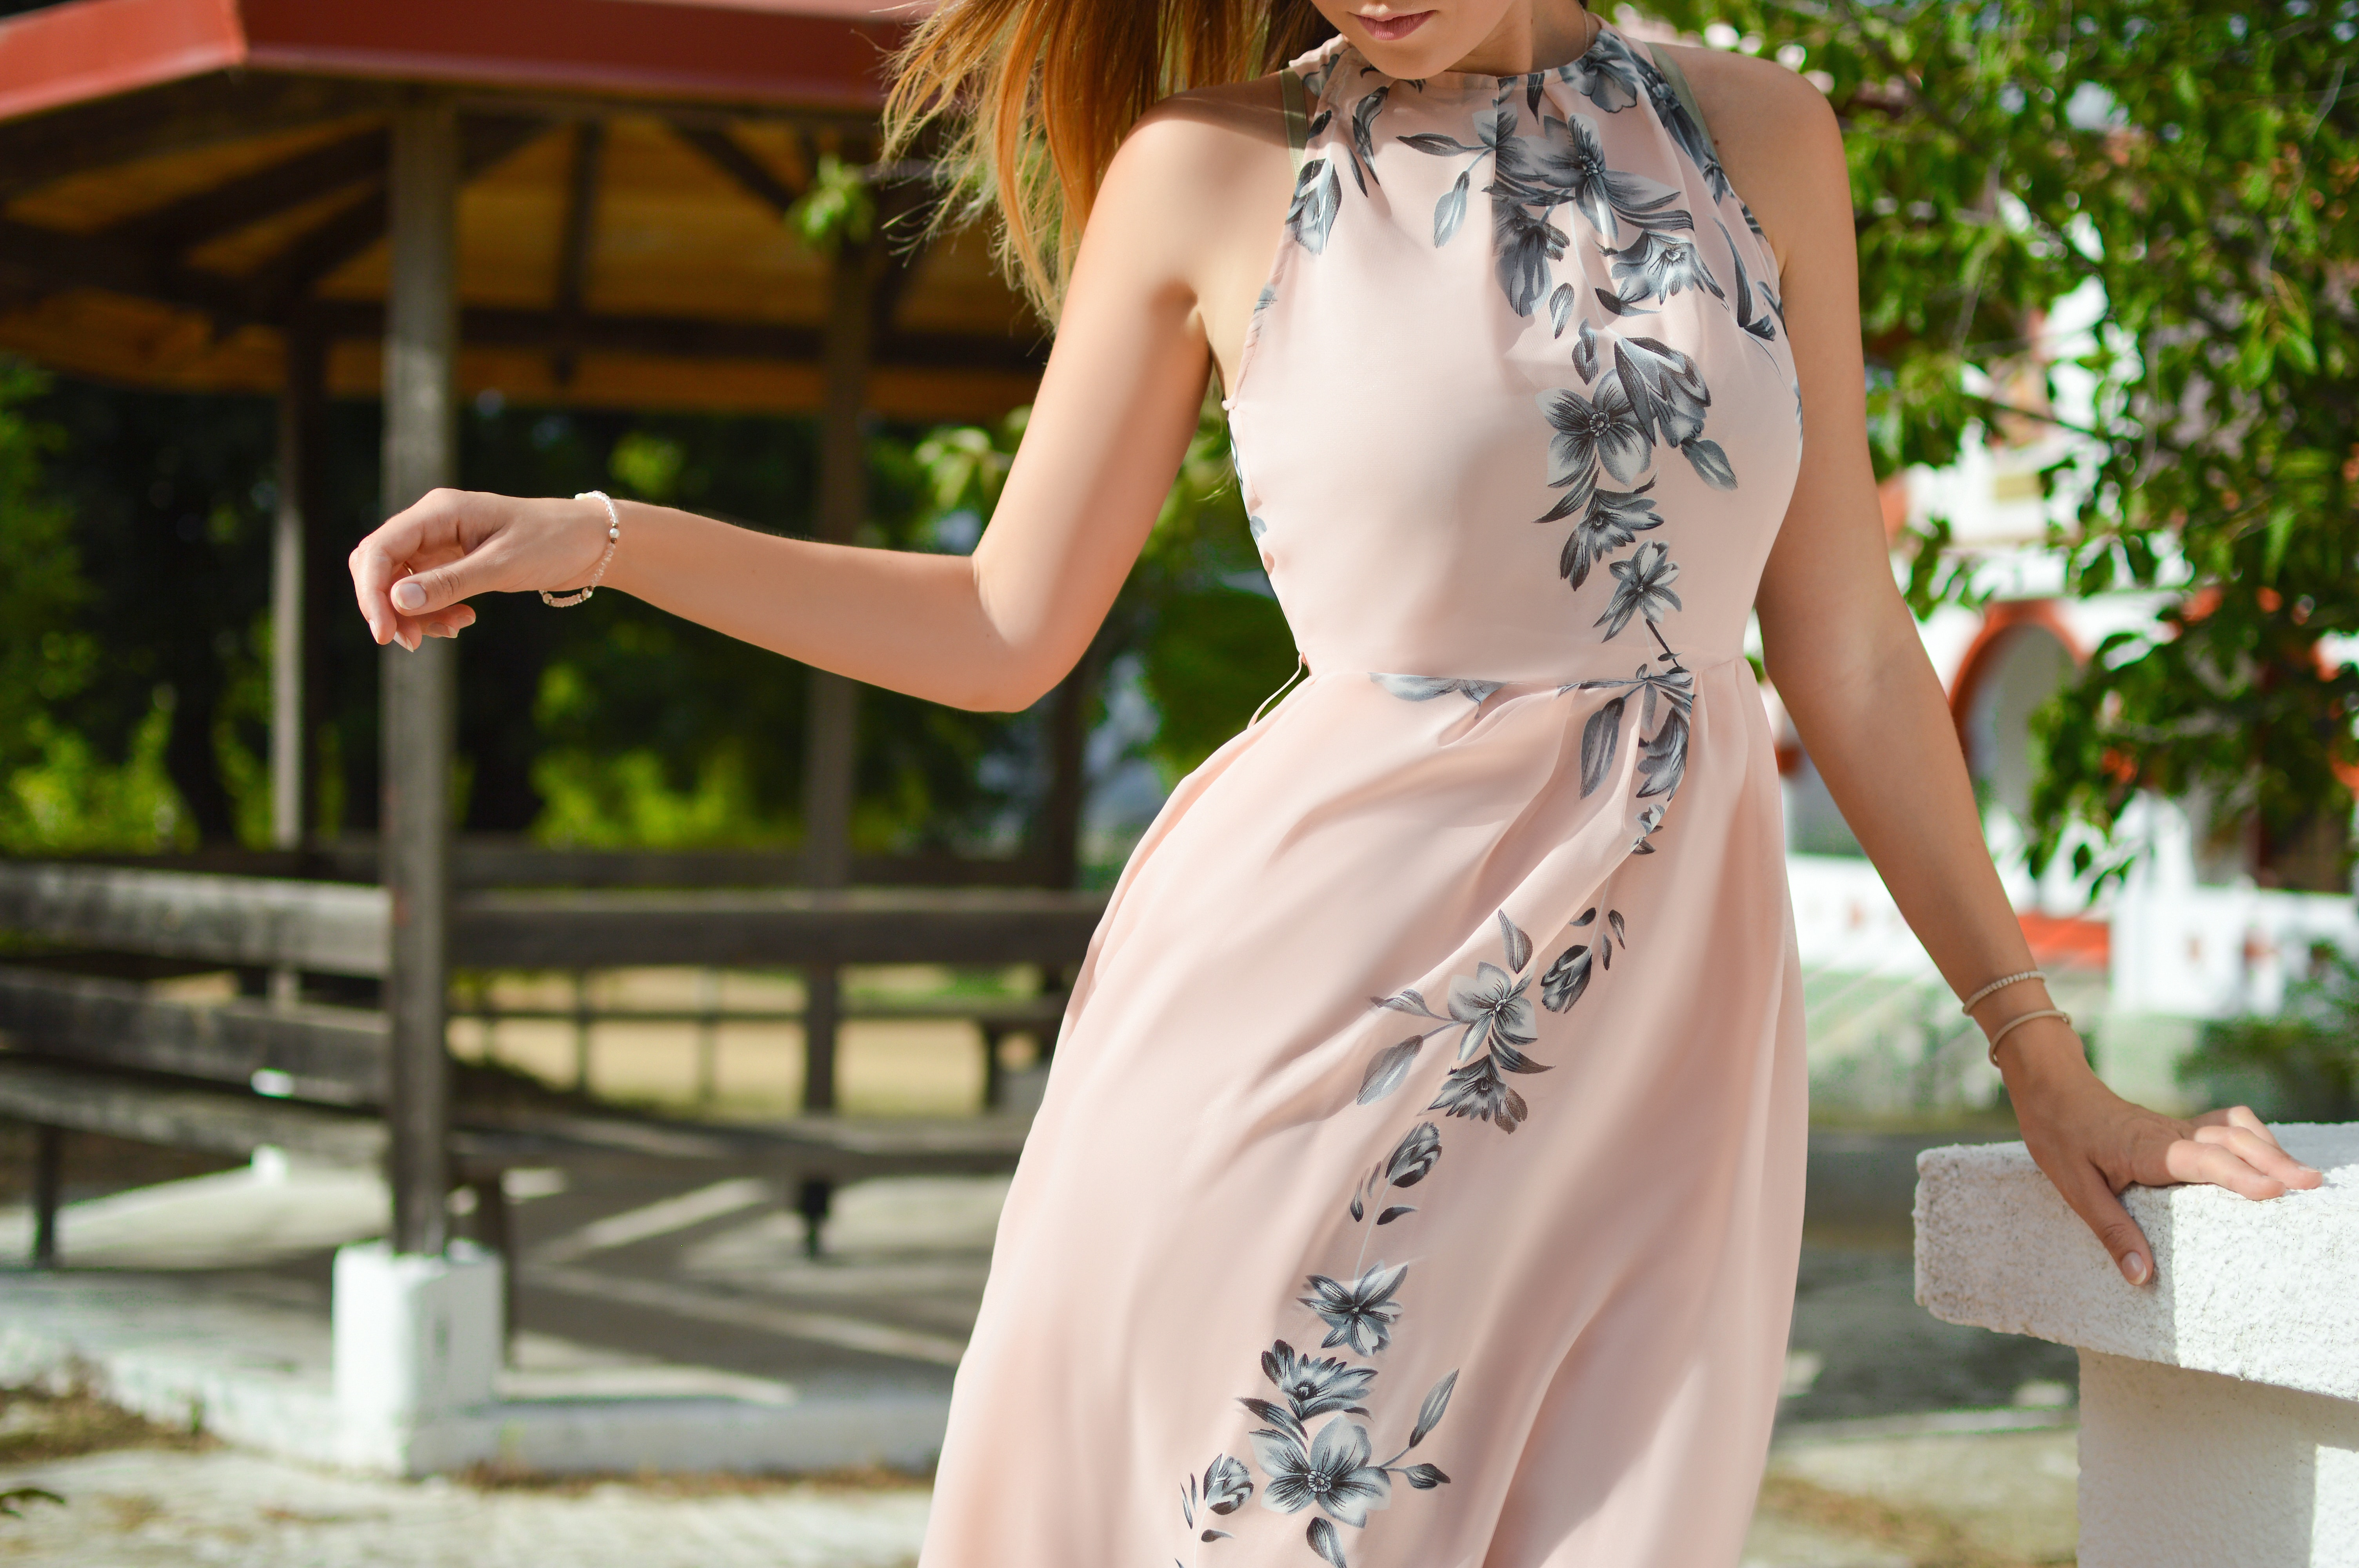 Woman in a flowy floral dress leans with windblown hair